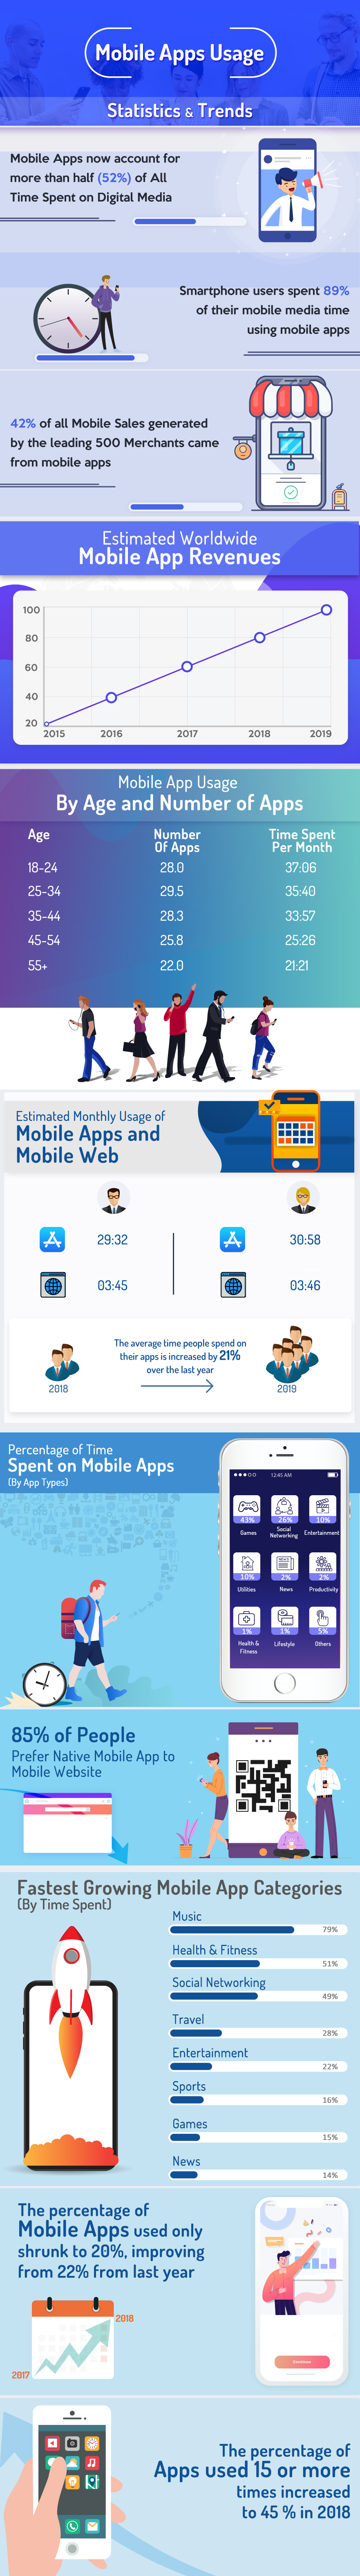 8 Ways your Well designed Mobile app can Increase your Business Revenue